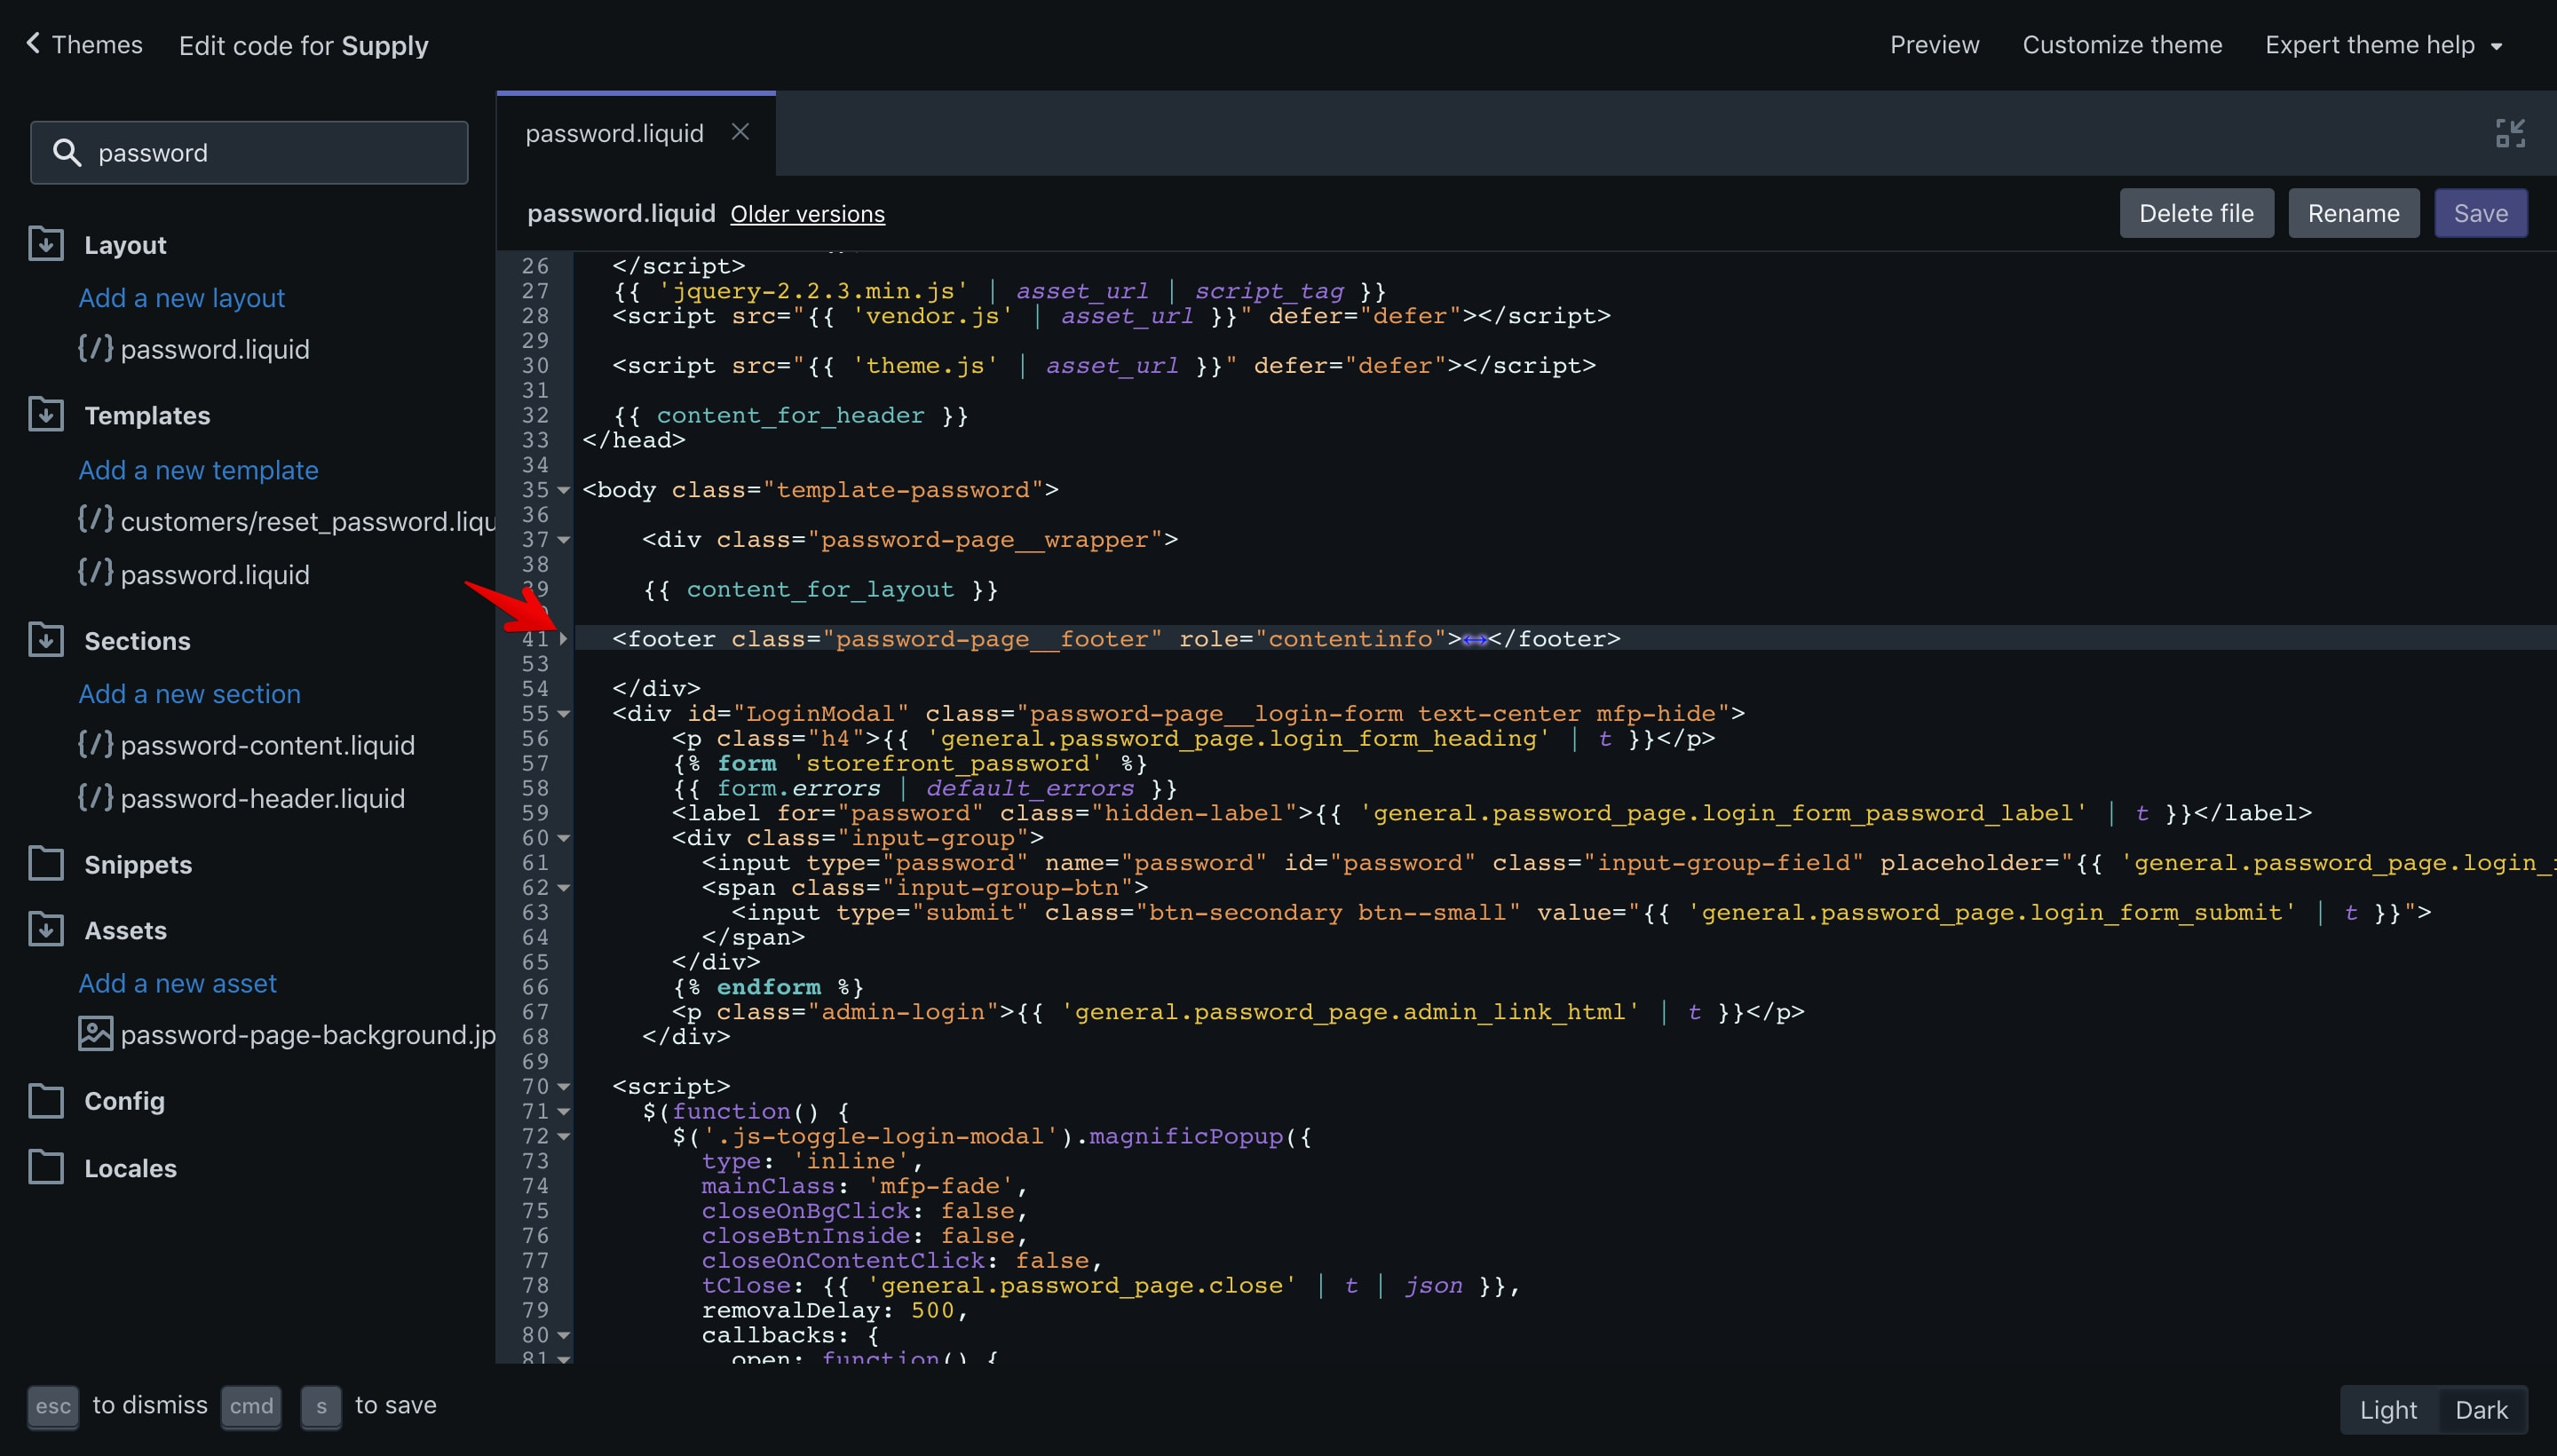 Supply theme copyright code selection in the code editor.